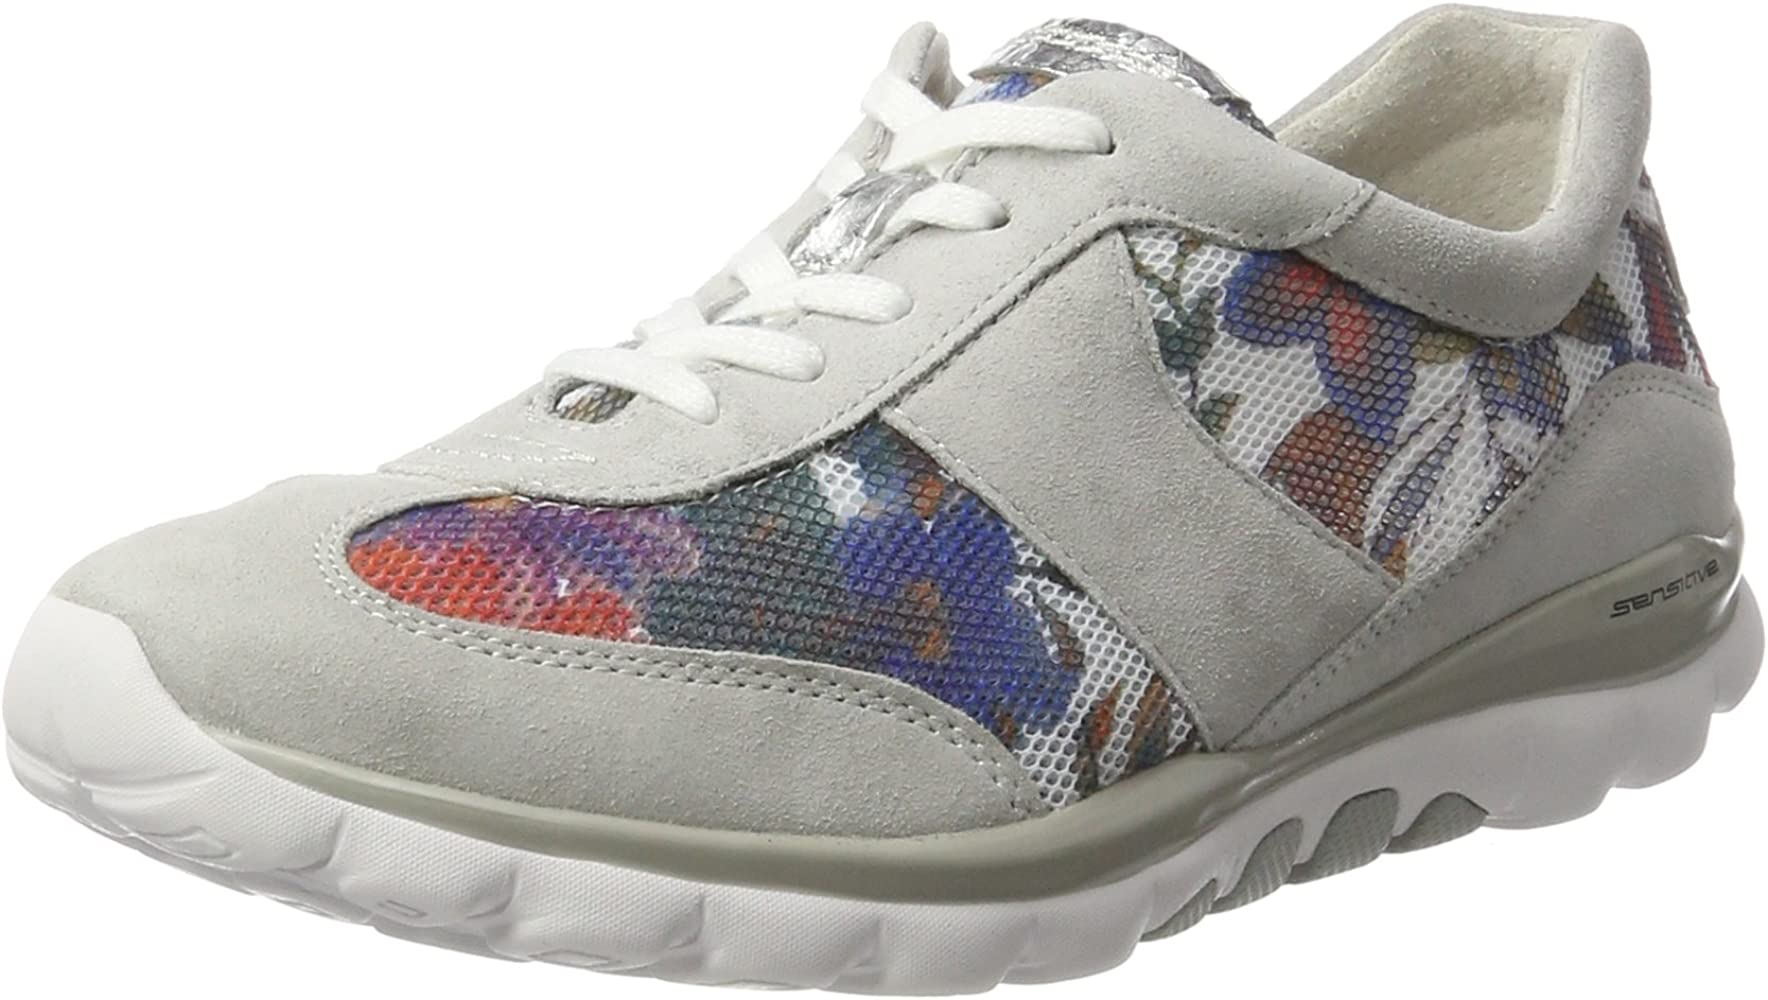 3ee7dec410121 Gabor Shoes Women's Rollingsoft Low-Top Sneakers, Beige (Flower/Ice/Argento